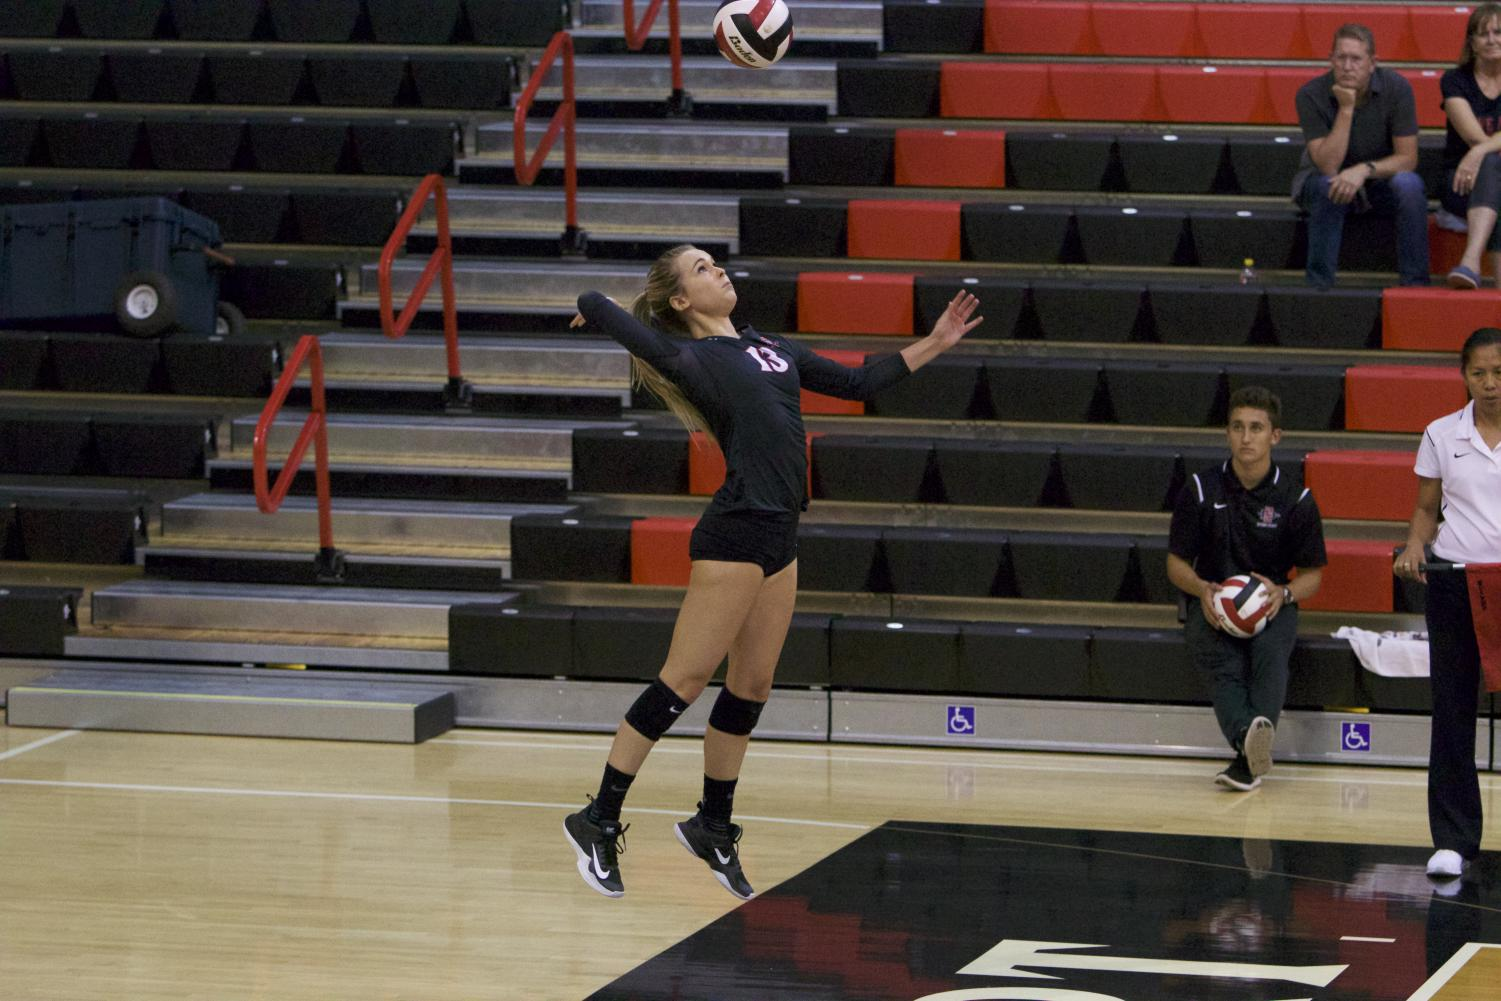 Senior libero Devyn Pritchard rises for a serve during SDSU's loss to Loyola Marymount on Sept. 8.